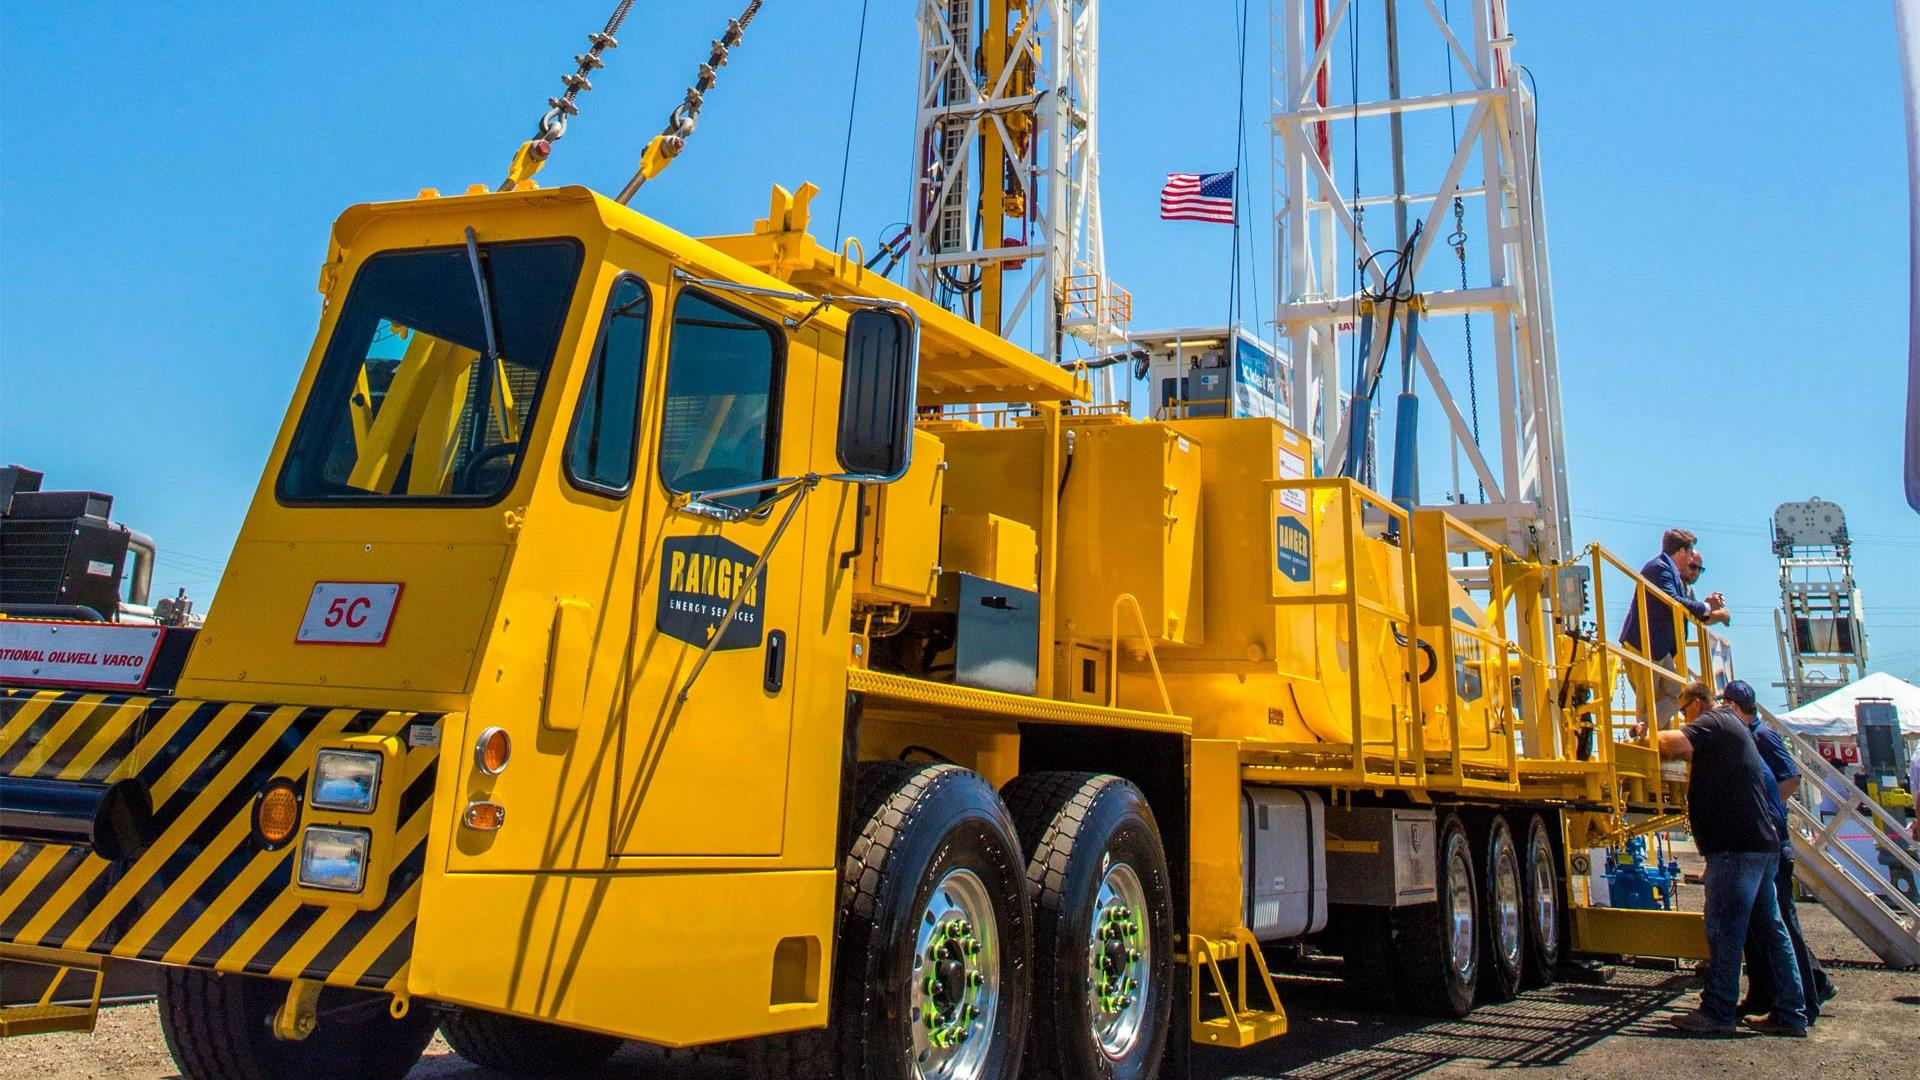 Side view of yellow mobile rig in USA